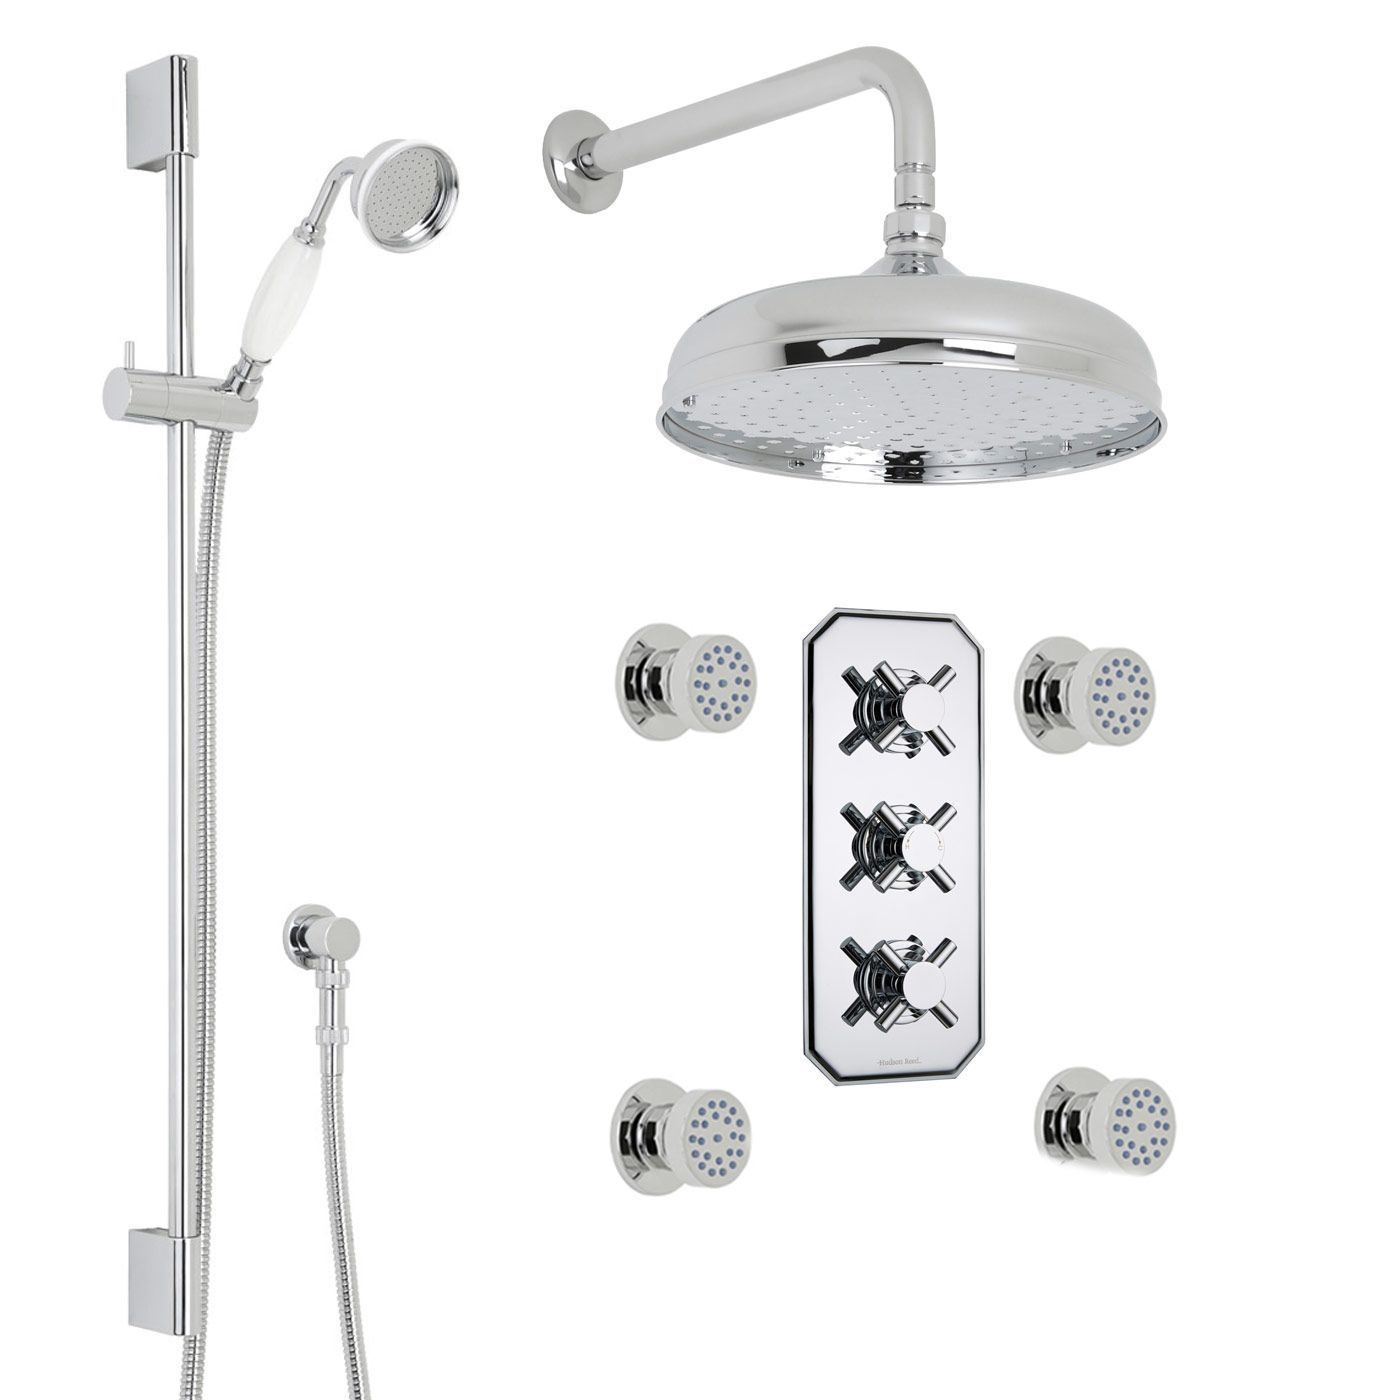 "Kristal Thermostatic Shower System with 12"" Round Head & Wall Arm , Handset & 4 Round Body Sprays"